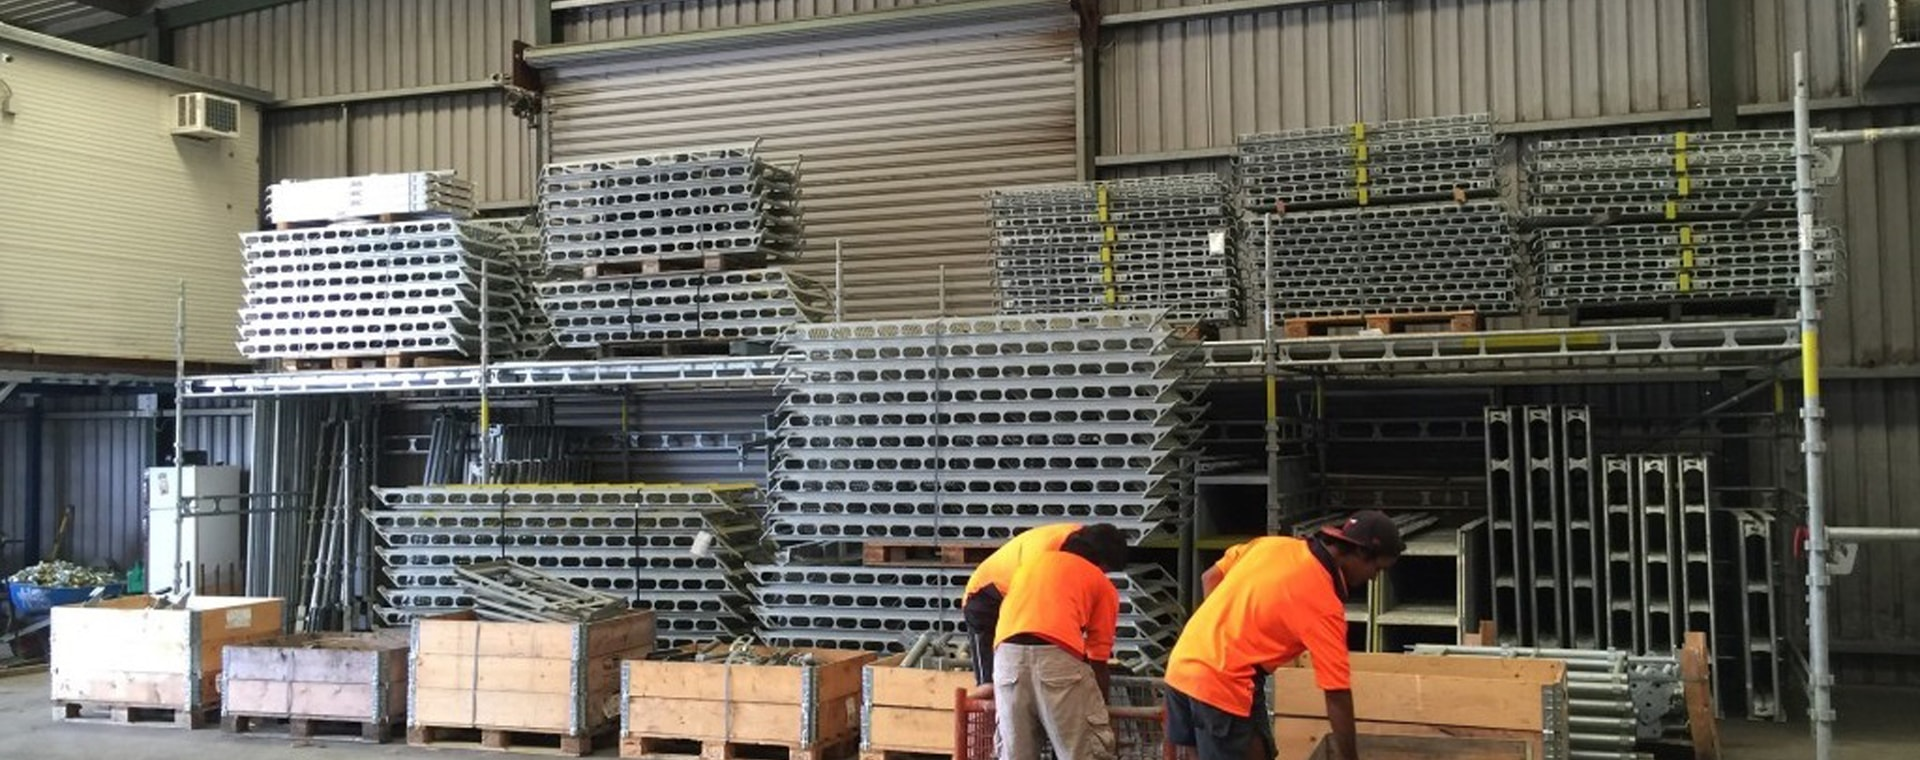 Brickwork and Scaffold Australia